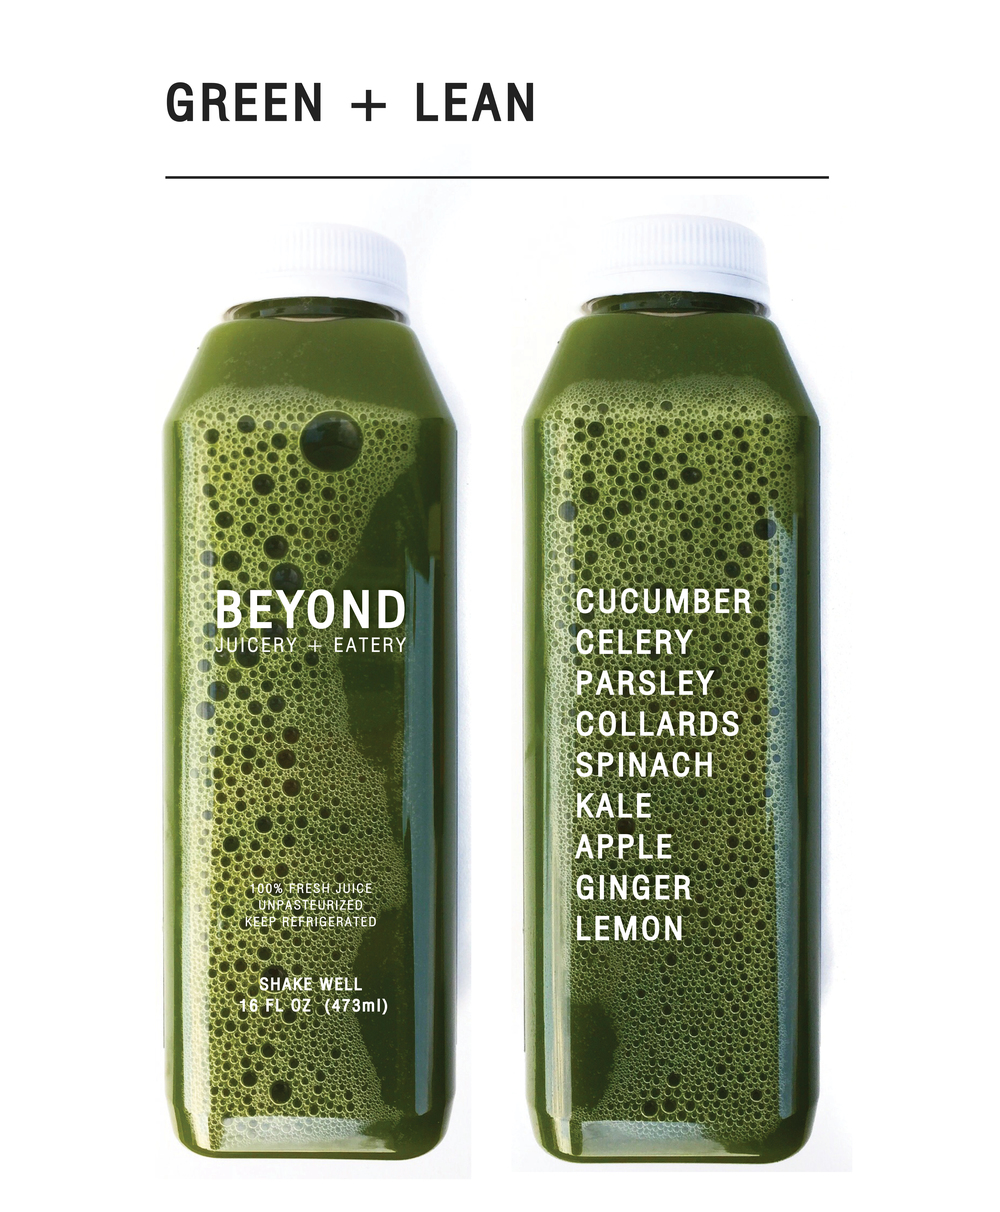 Drink to keep lean / Get your daily dose of leafy greens by drinking this intense juice that is rich in vitamin K, vitamin C, iron, calcium and potassium, giving you the nutrients needed to feel fuller longer.  The diuretic properties of celery and parsley help to flush out toxins and excess water weight. $9.00 (16oz)